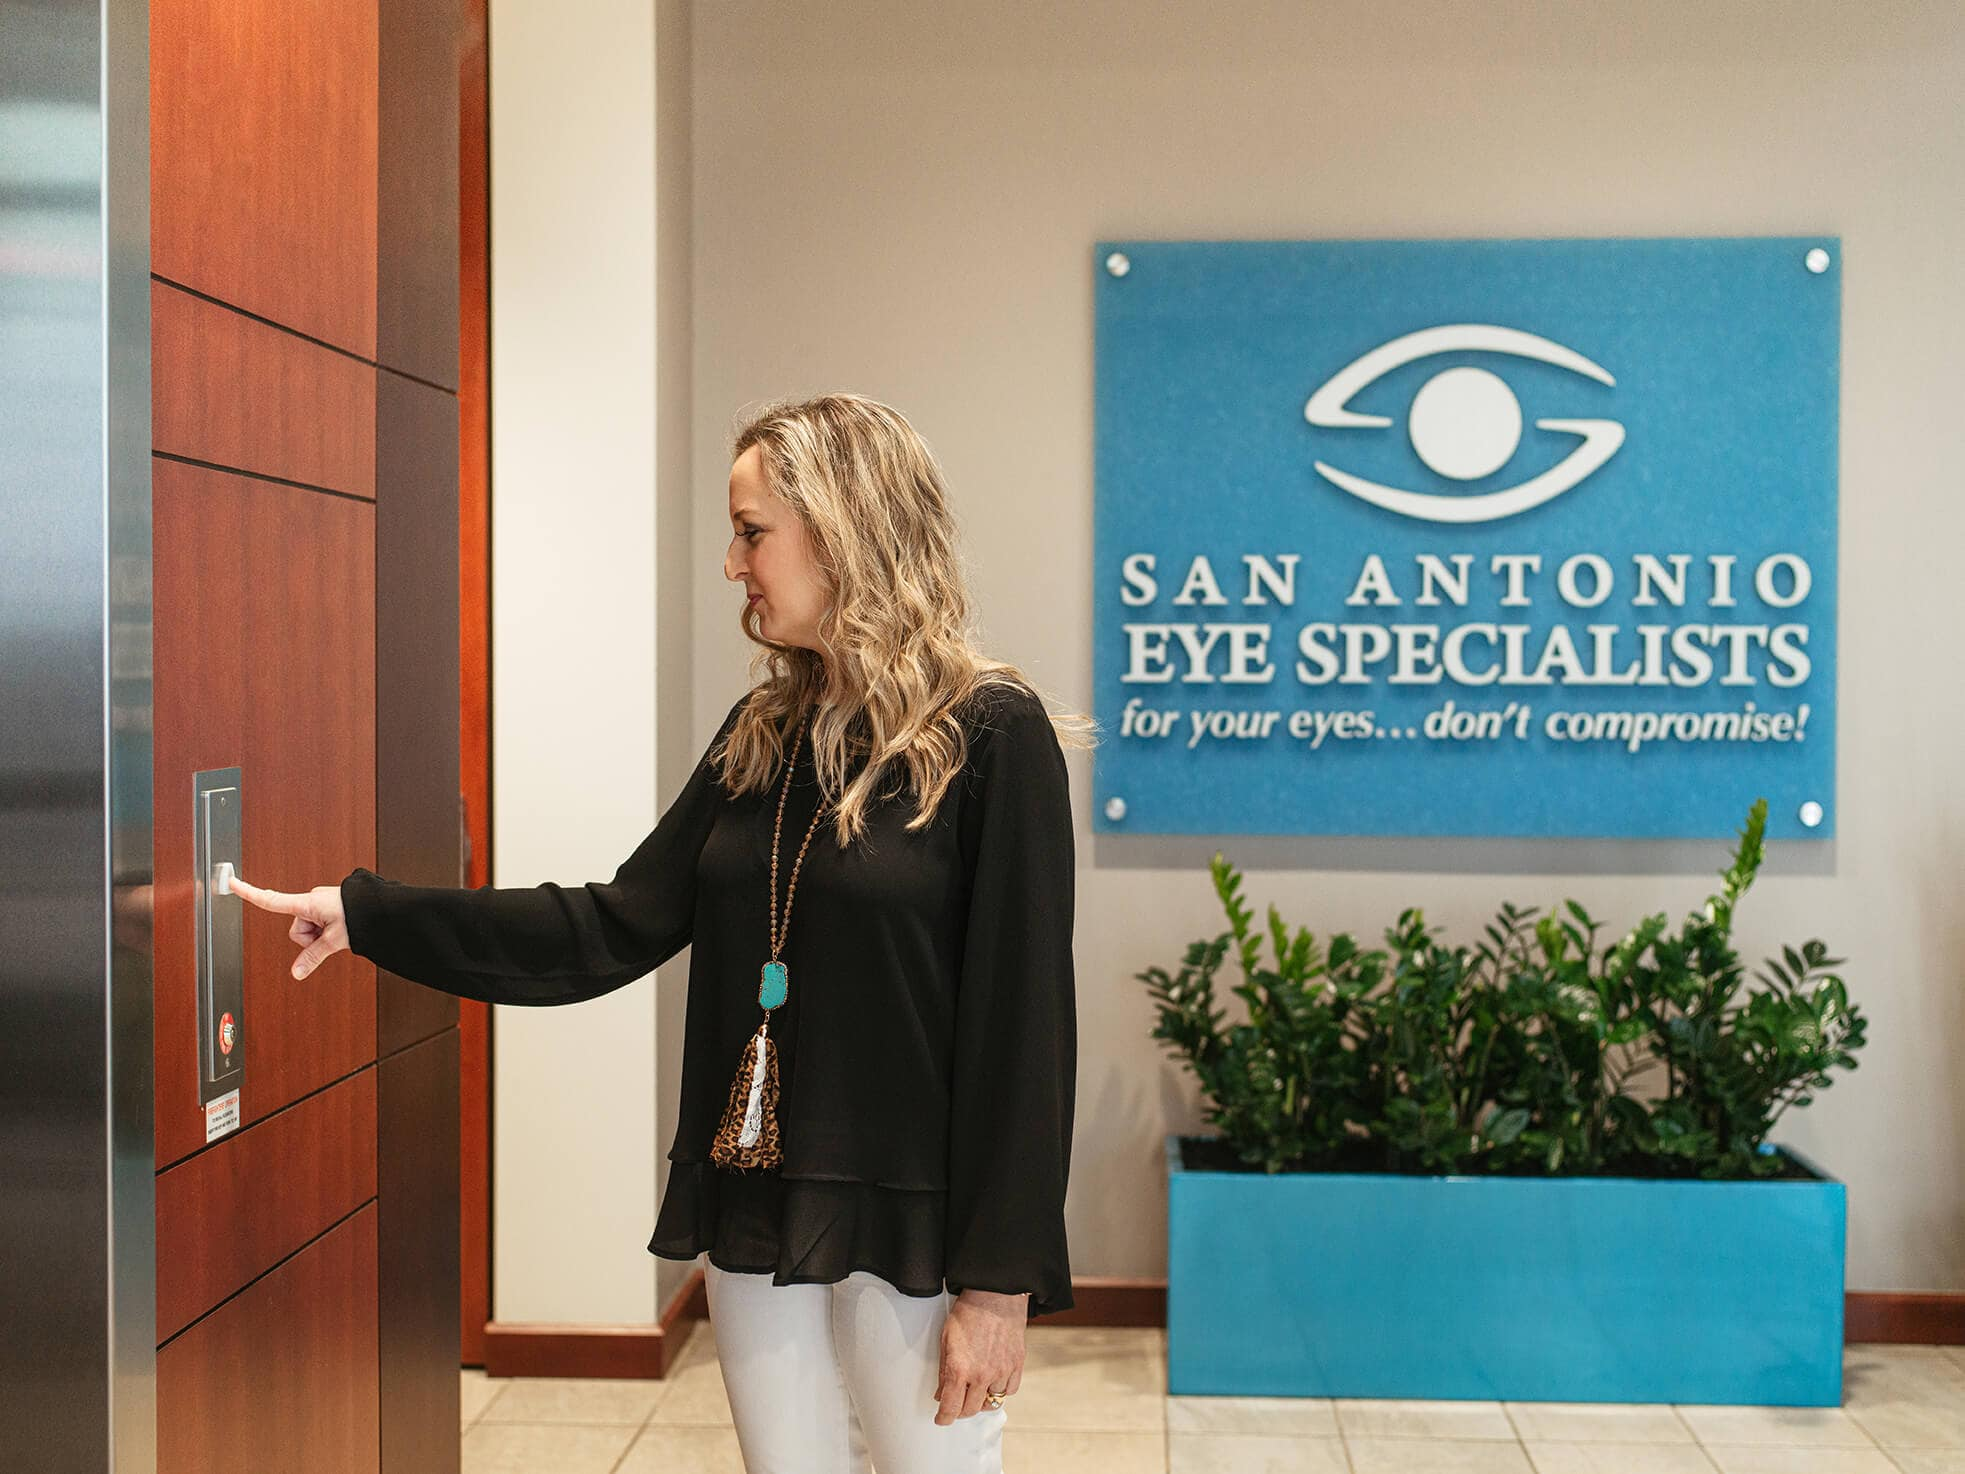 Woman at elevators in front of San Antonio Eye Specialists sign.